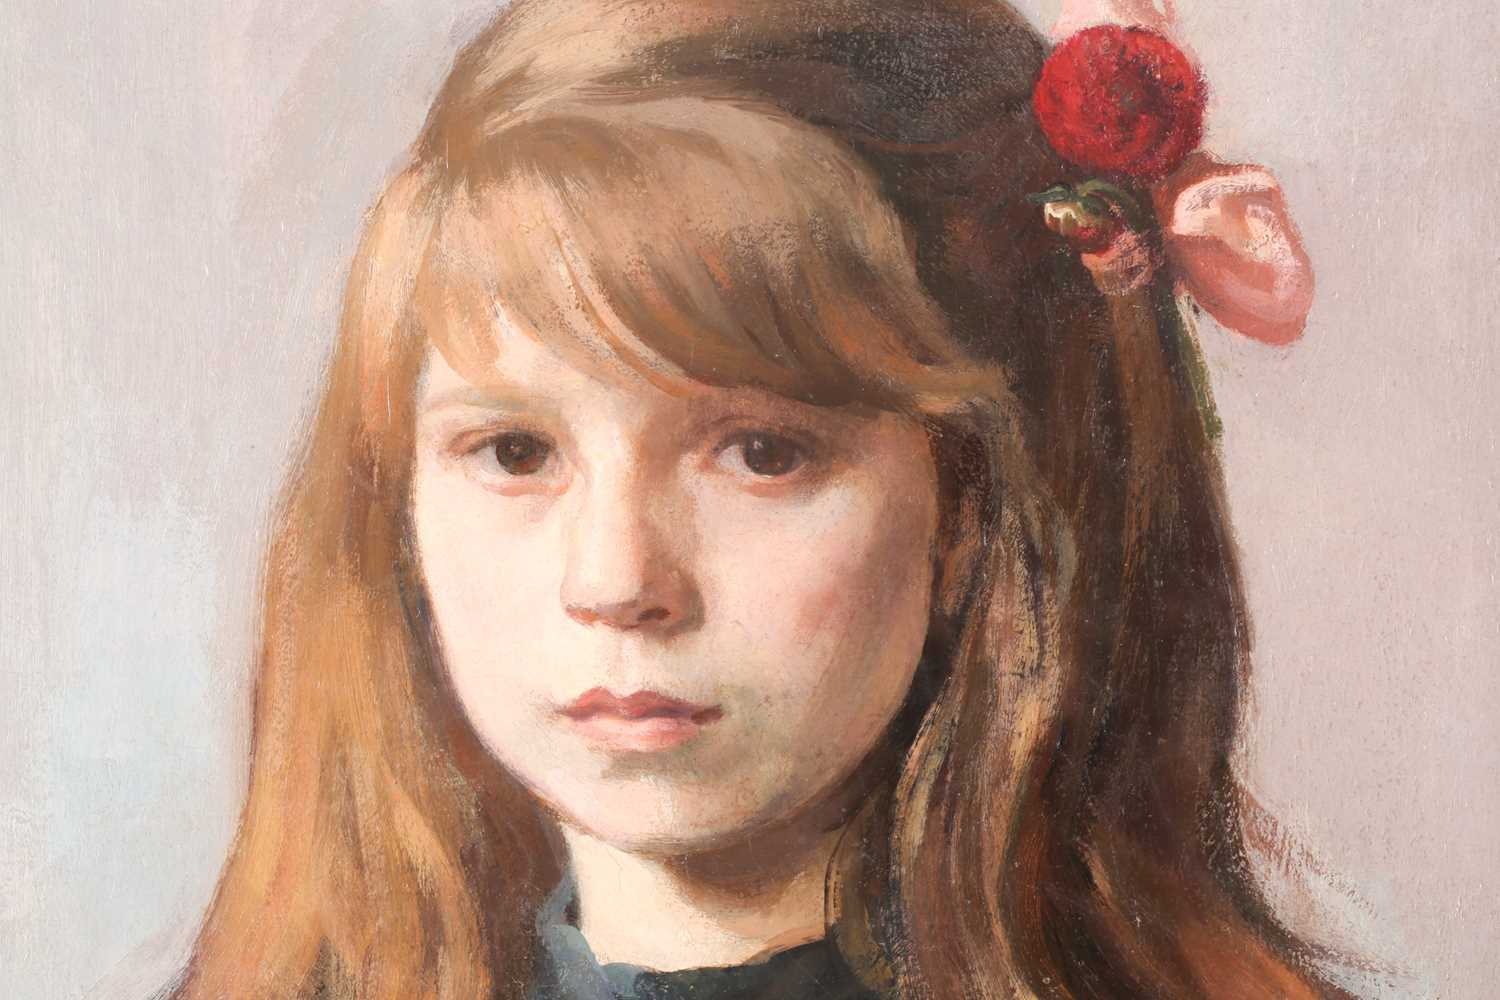 David Abraham Bueno de Mesquita (1889 - 1962), portrait of a young girl with flowers, signed, - Image 4 of 4